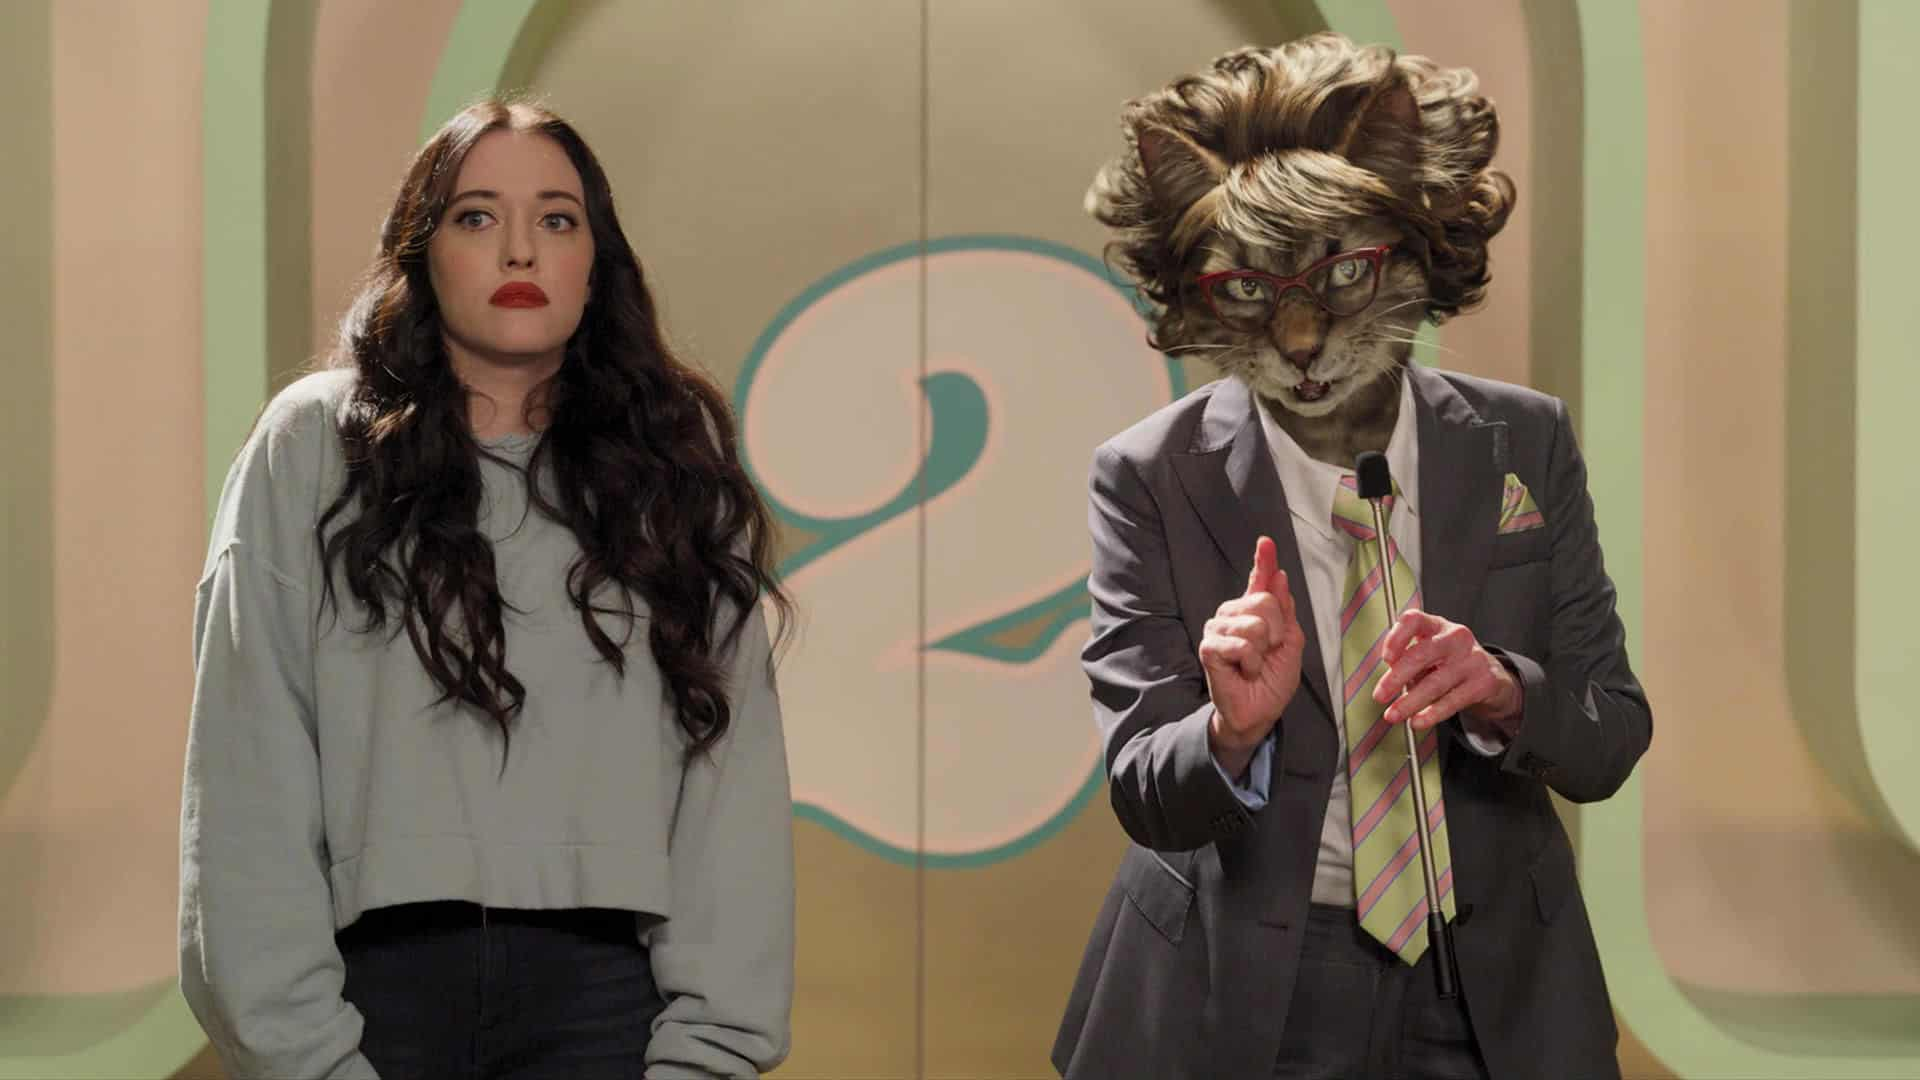 Dollface with Kat Dennings as Jules Wiley and Beth Grant as Cat Lady